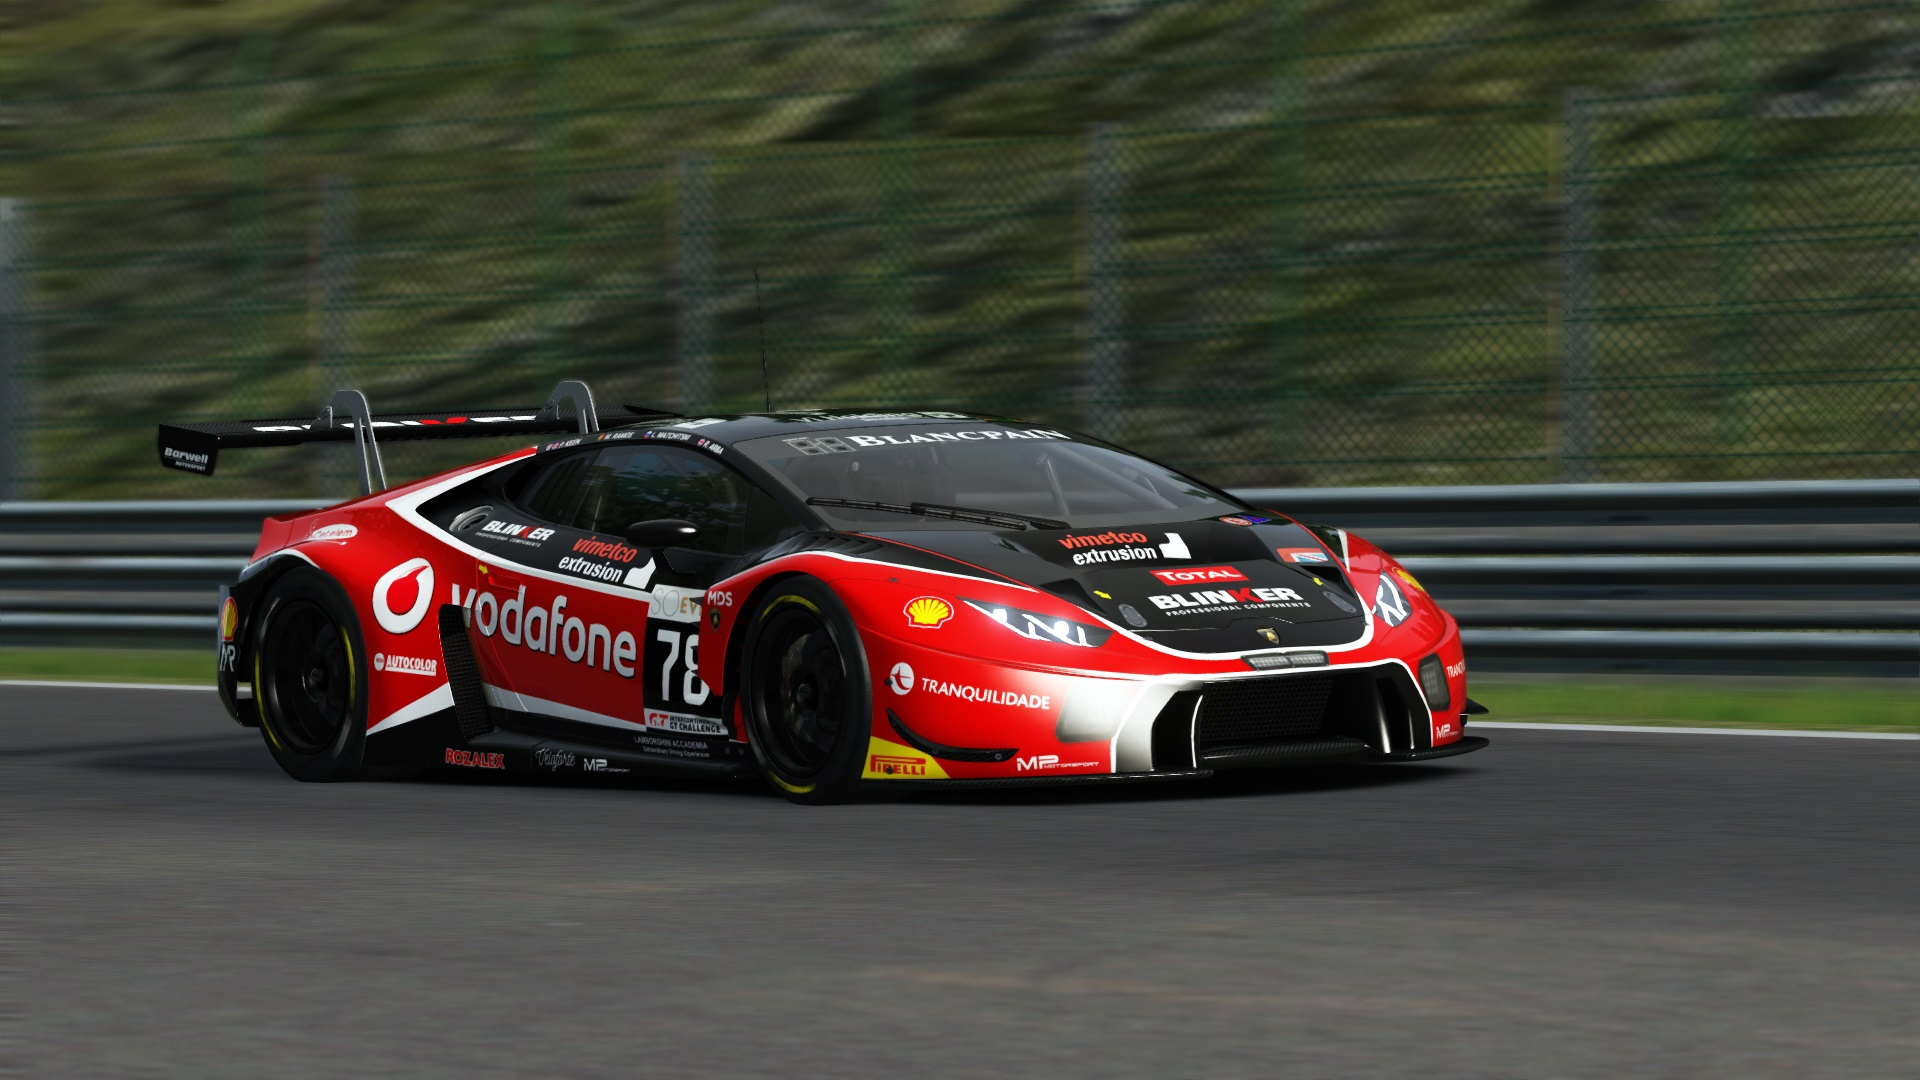 Screenshot_ks_lamborghini_huracan_gt3_spa_7-8-117-15-14-25.jpg